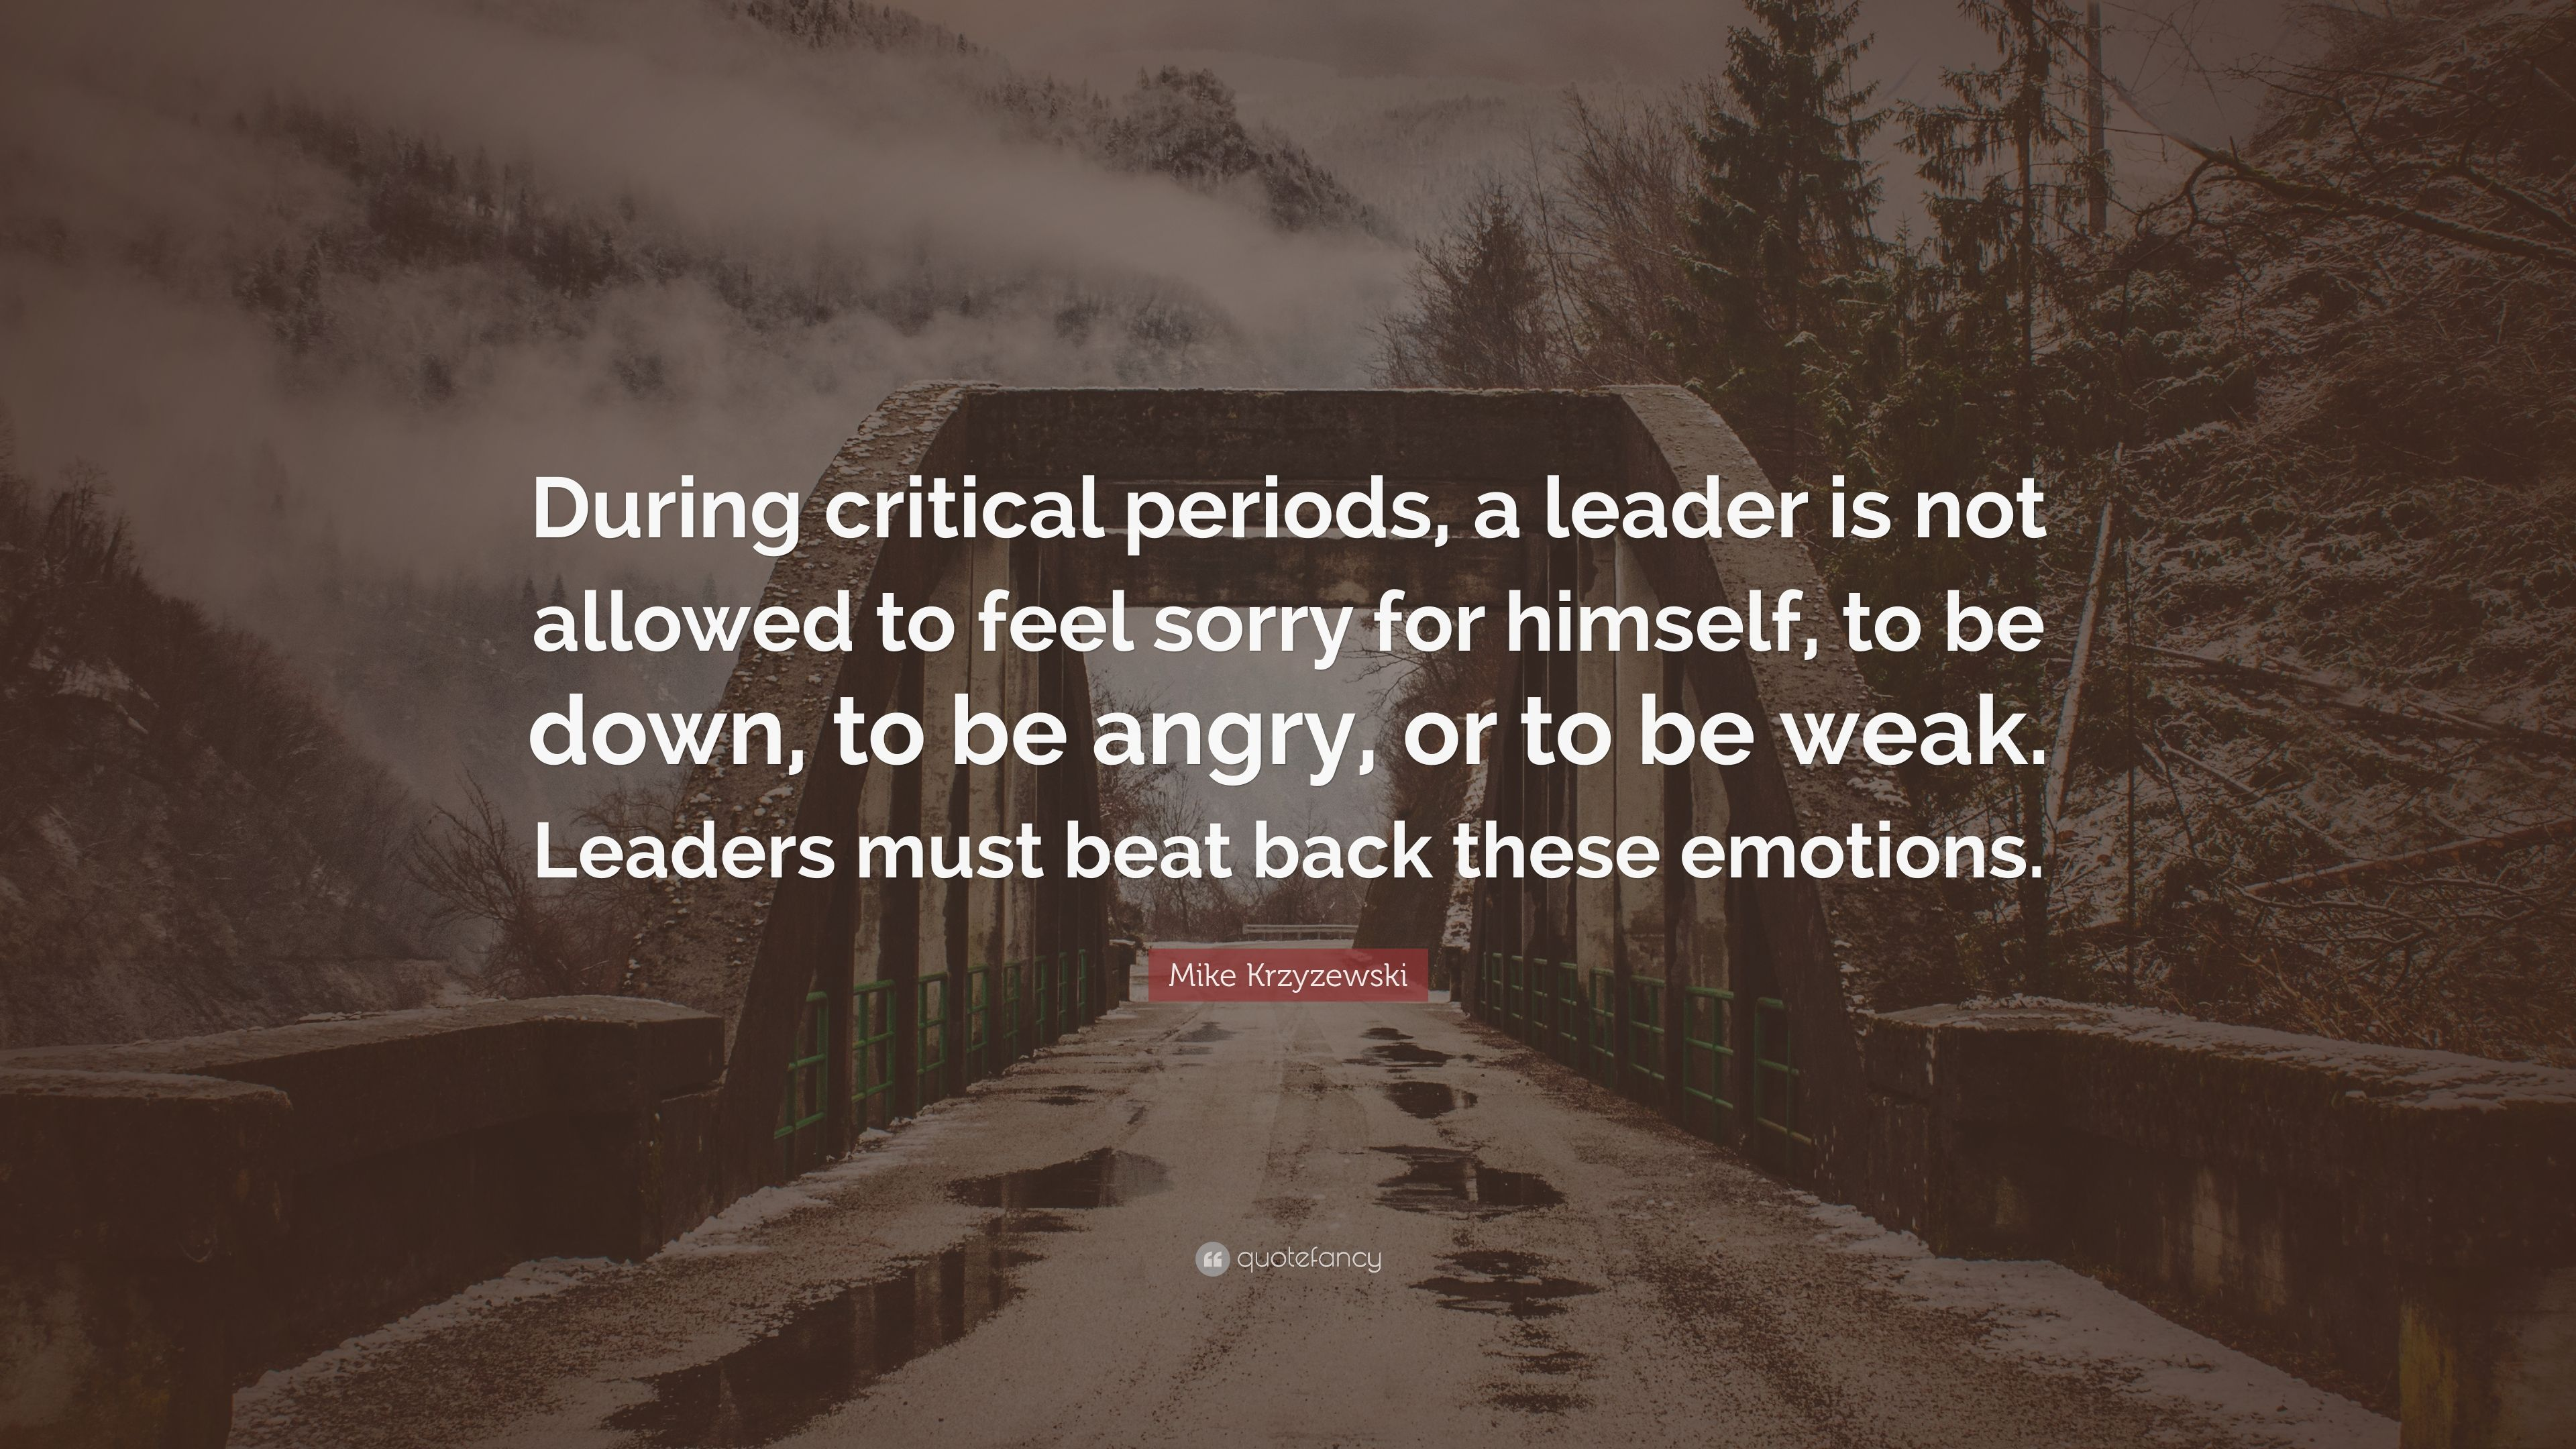 Amazing Mike Krzyzewski Quote: U201cDuring Critical Periods, A Leader Is Not Allowed To  Feel